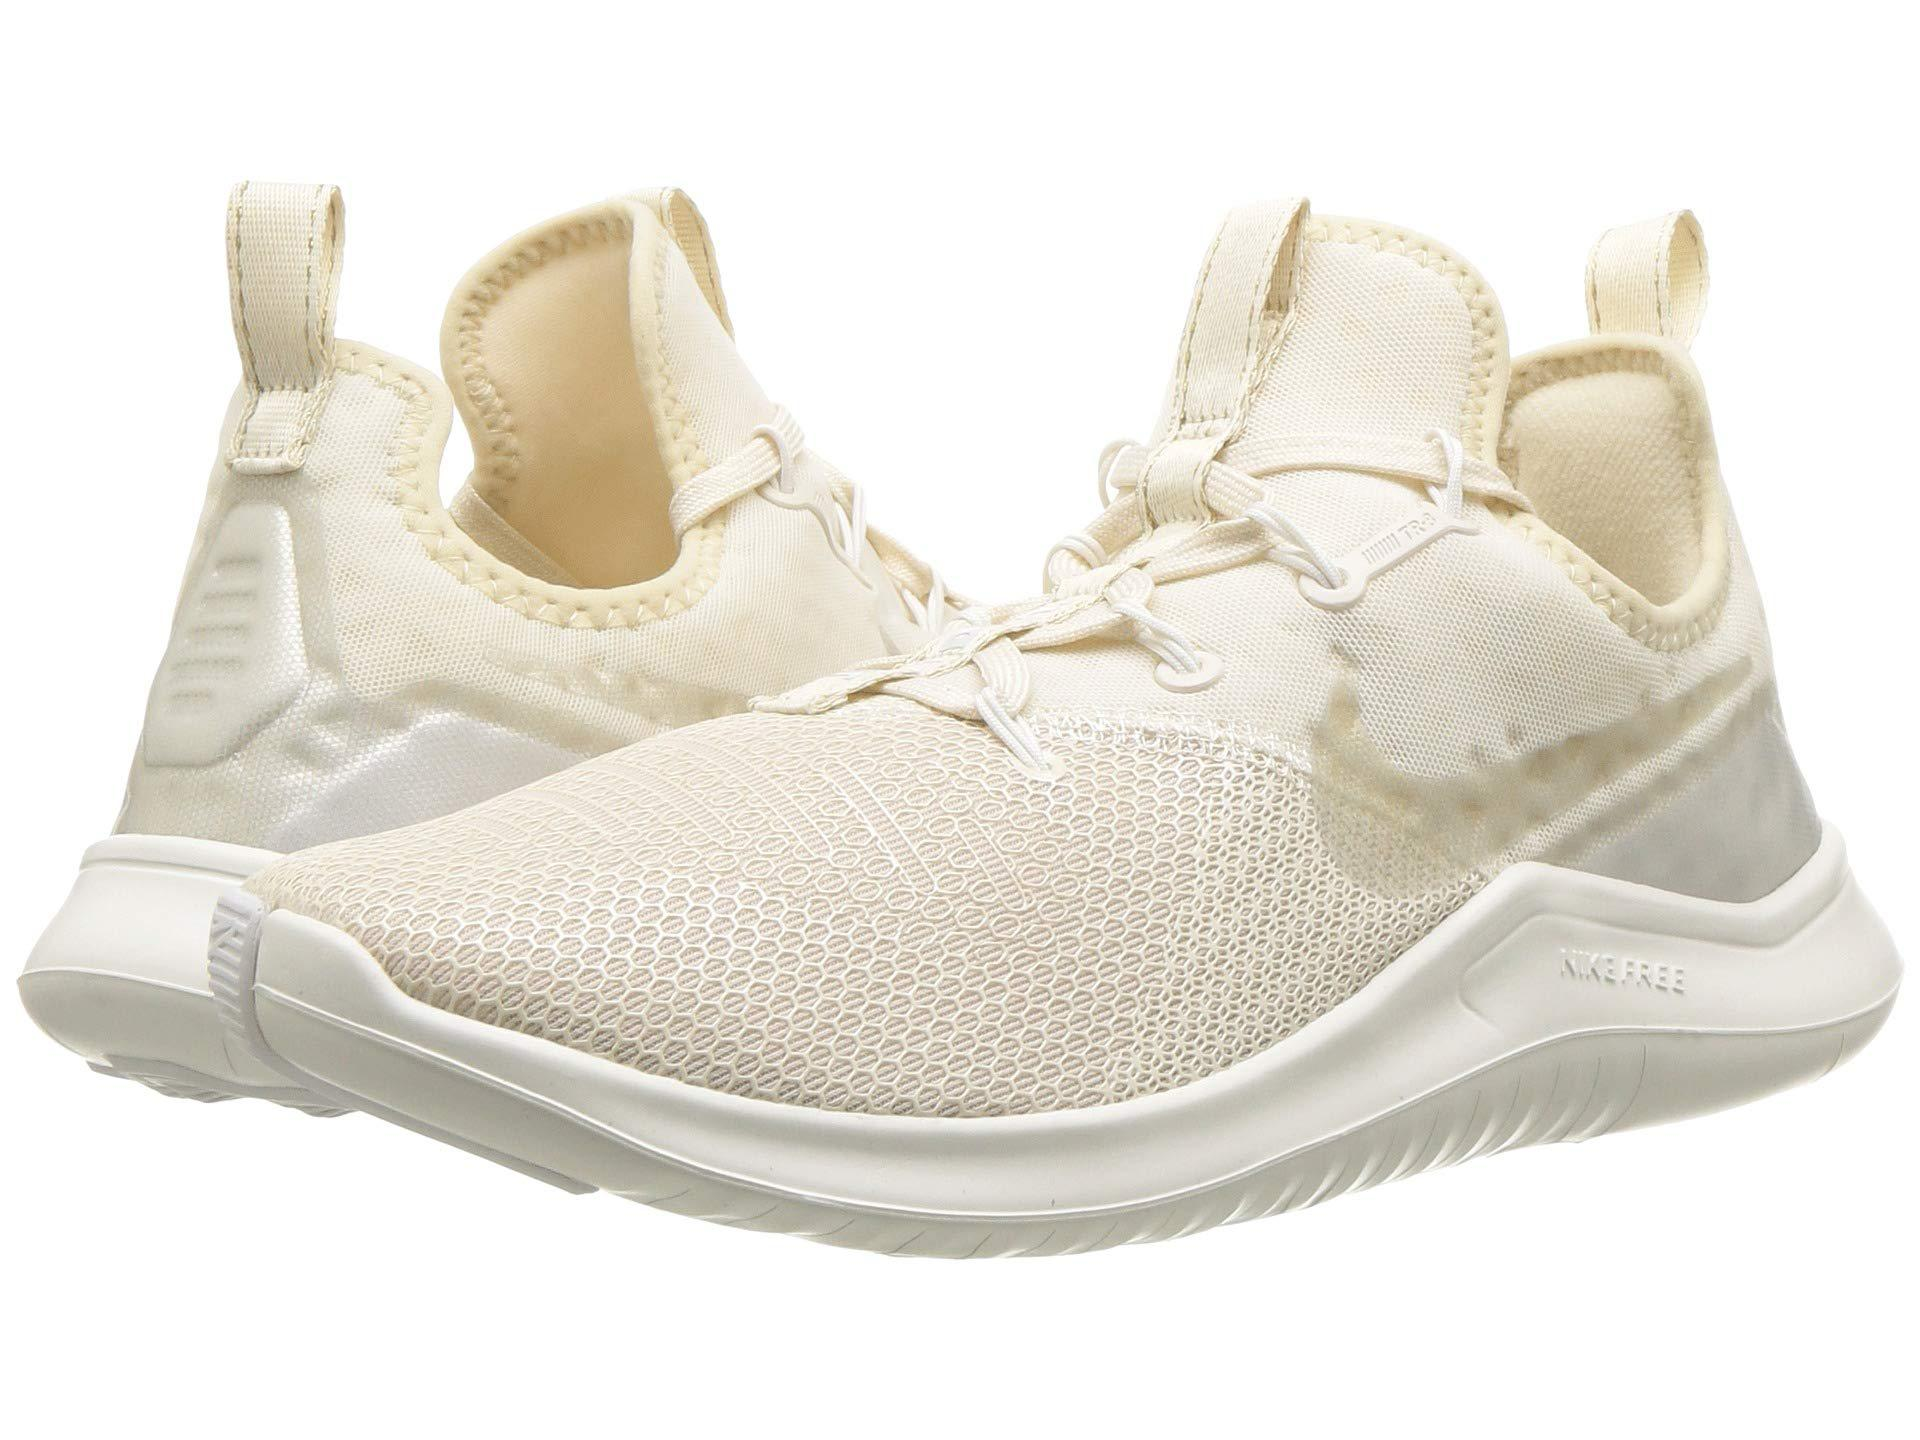 eca11027d49c Lyst - Nike Free Tr 8 Champagne (light Cream light Cream platinum ...